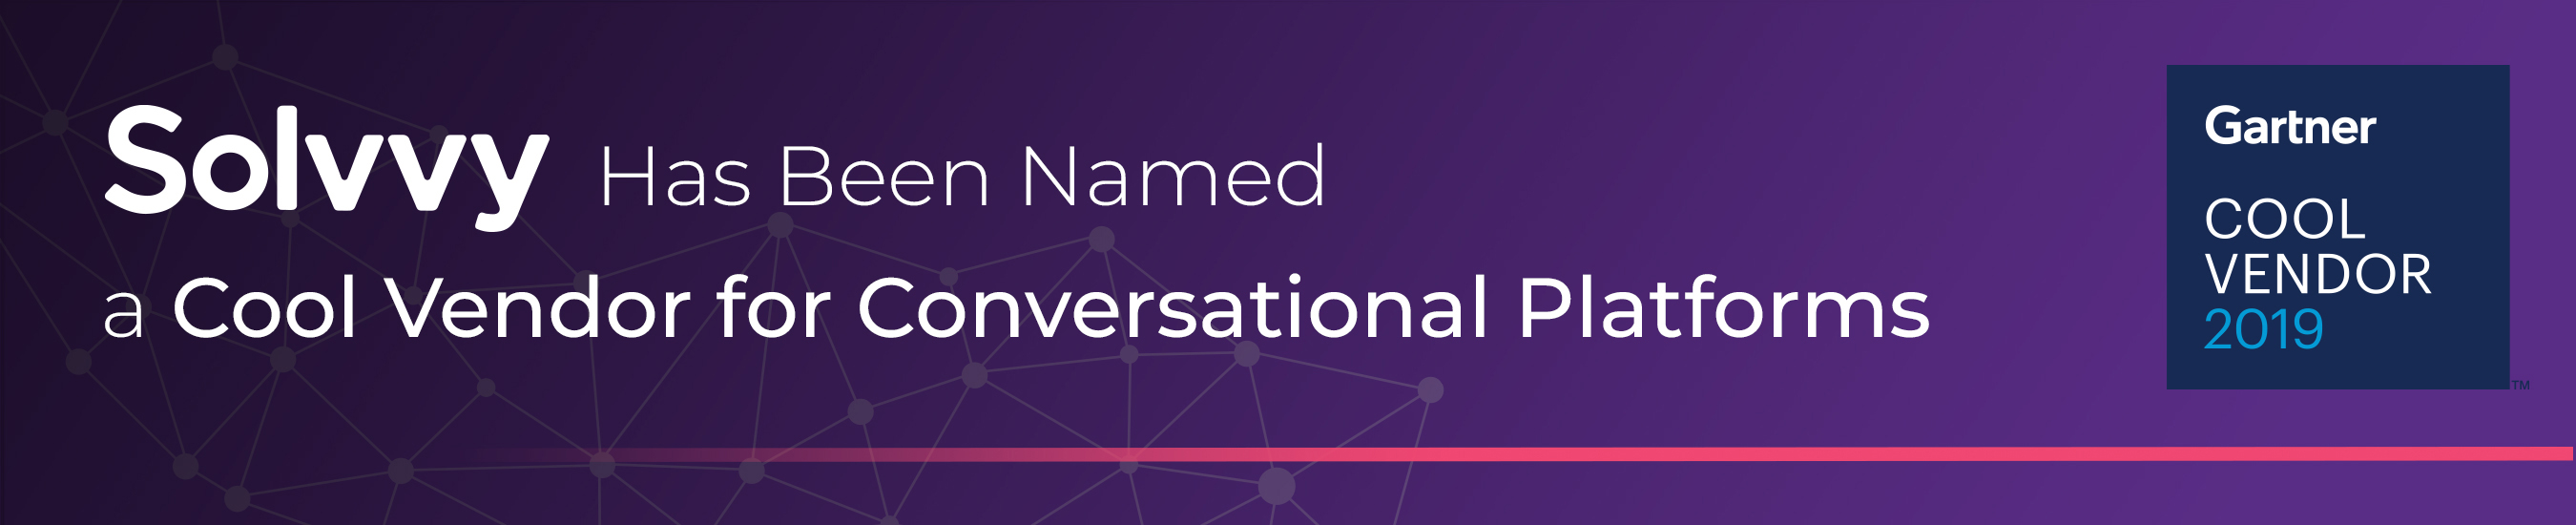 Solvvy Has Been Named a Cool Vendor for Conversational Platforms